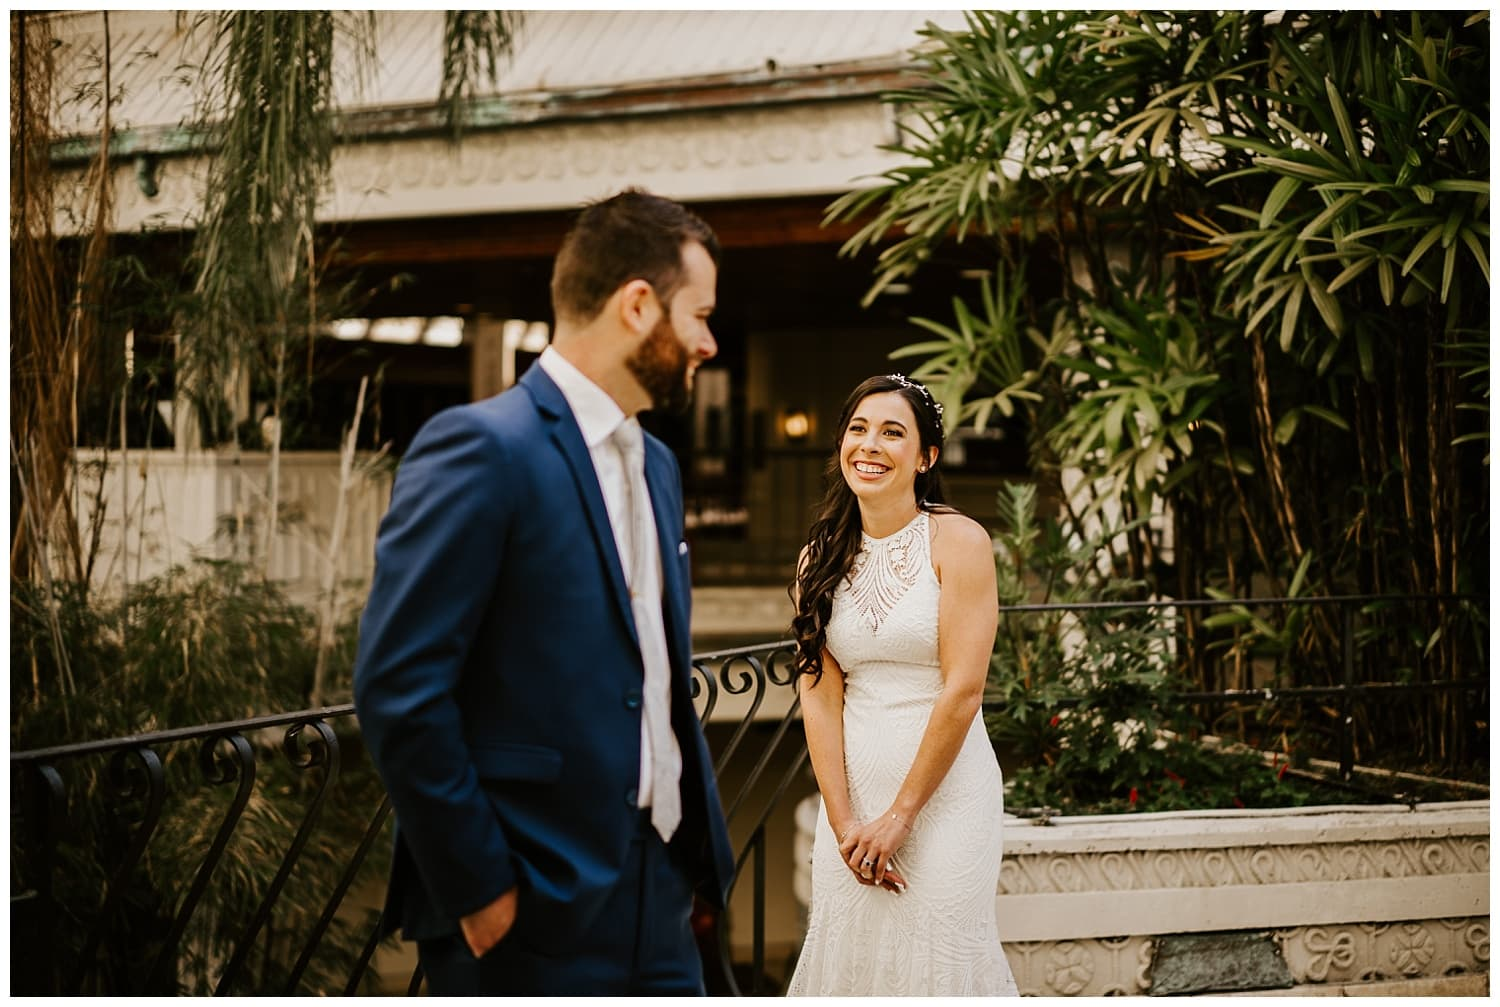 clearwater wedding photographer,fort lauderdale photographer,fort lauderdale wedding photographer,jupiter wedding photographer,miami photographer,miami wedding,miami wedding photographer,orlando photographer,orlando wedding photographer,palm beach photographer,palm beach wedding photographer,redlands wedding photographer,saint augustine wedding photographer,schnebly winery,schnebly winery wedding,stuart wedding photographer,winery wedding,